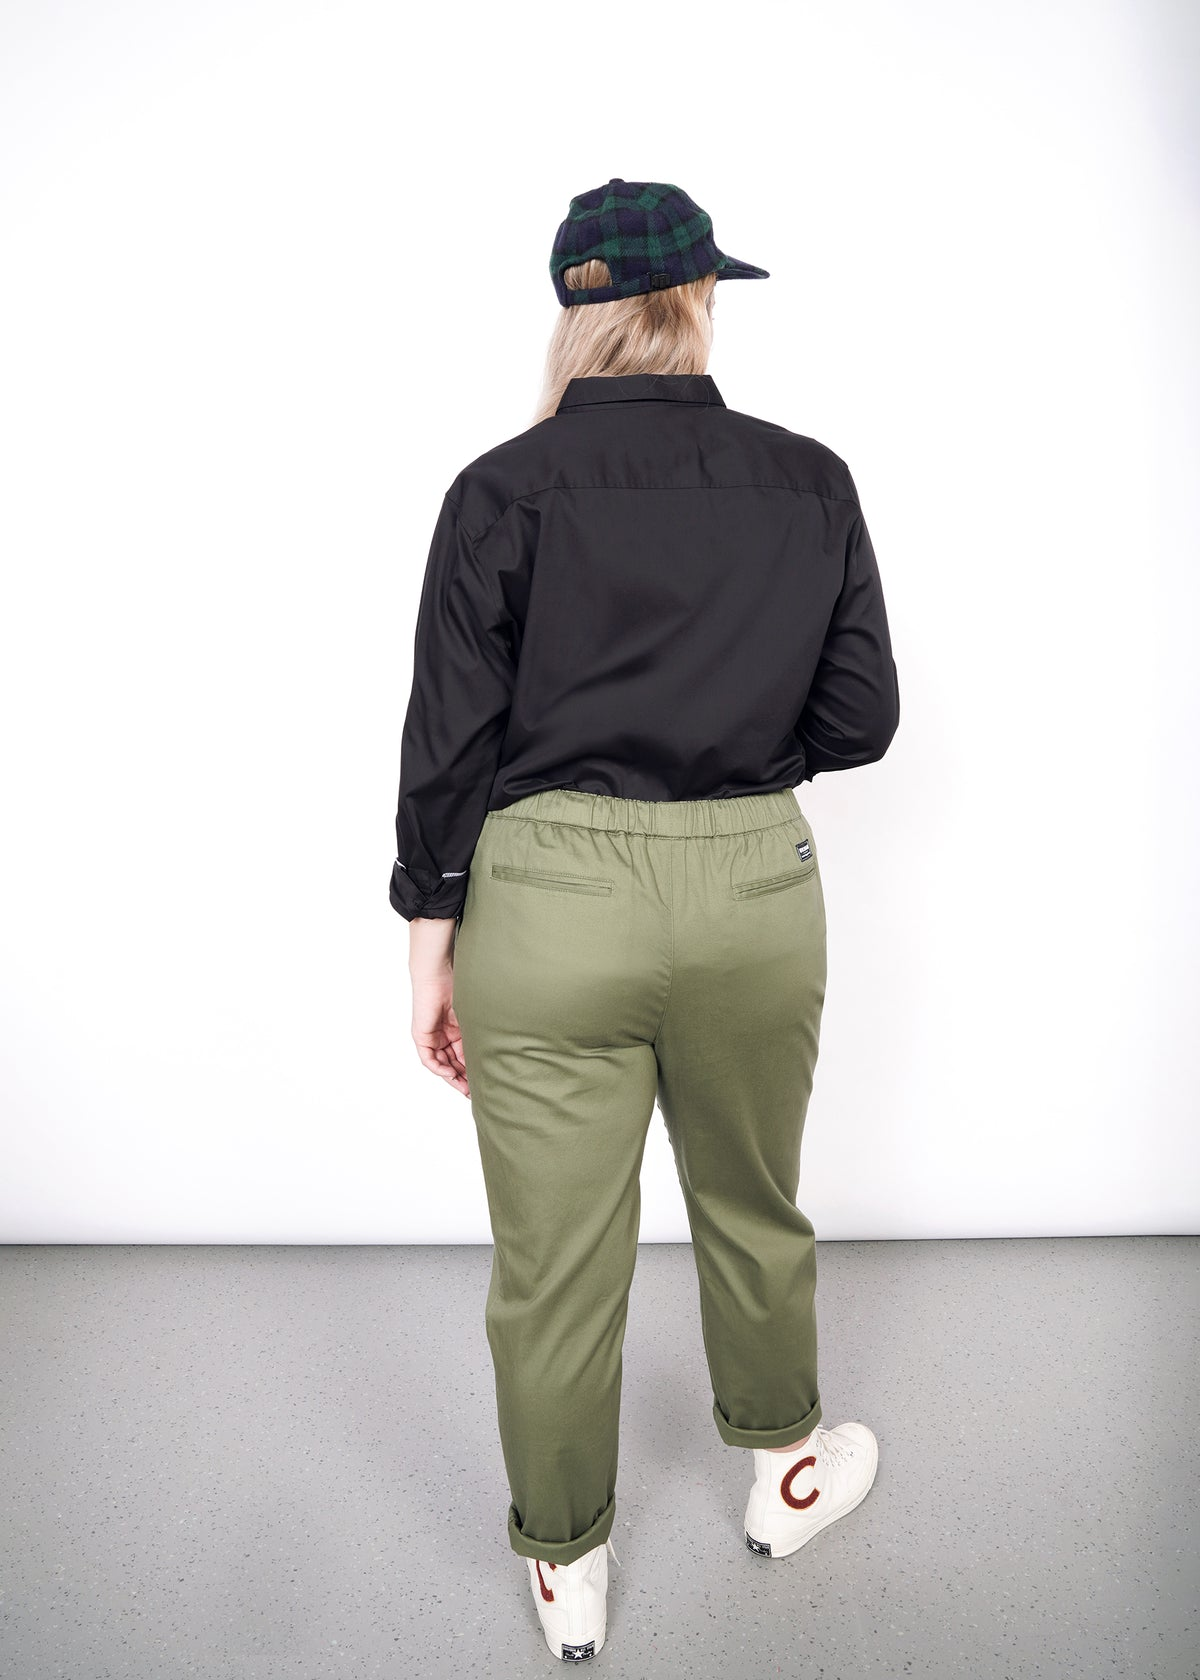 Model facing away form camera, black shirt tucked in to show butt of olive drawstring pants